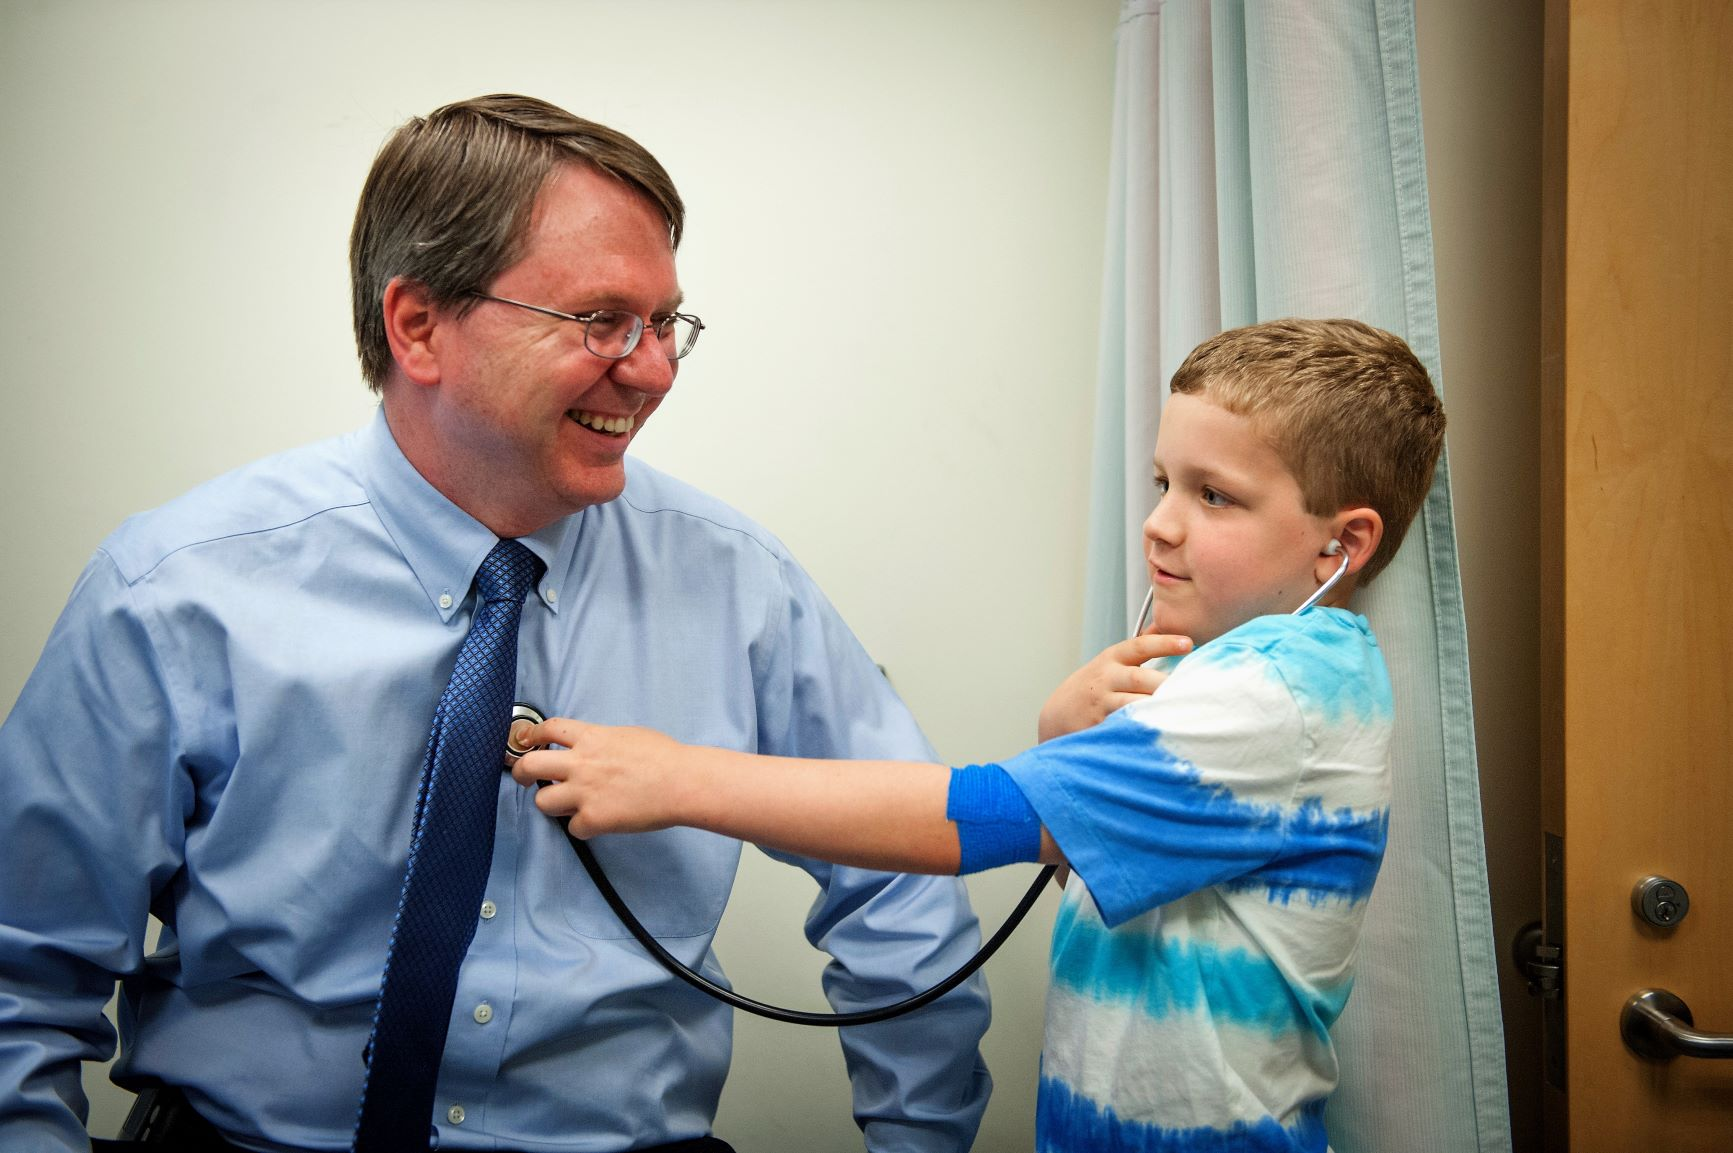 Dr. Daniel (Trey) Lee treated Honored Kid and Ambassador Phineas at the NCI in 2013